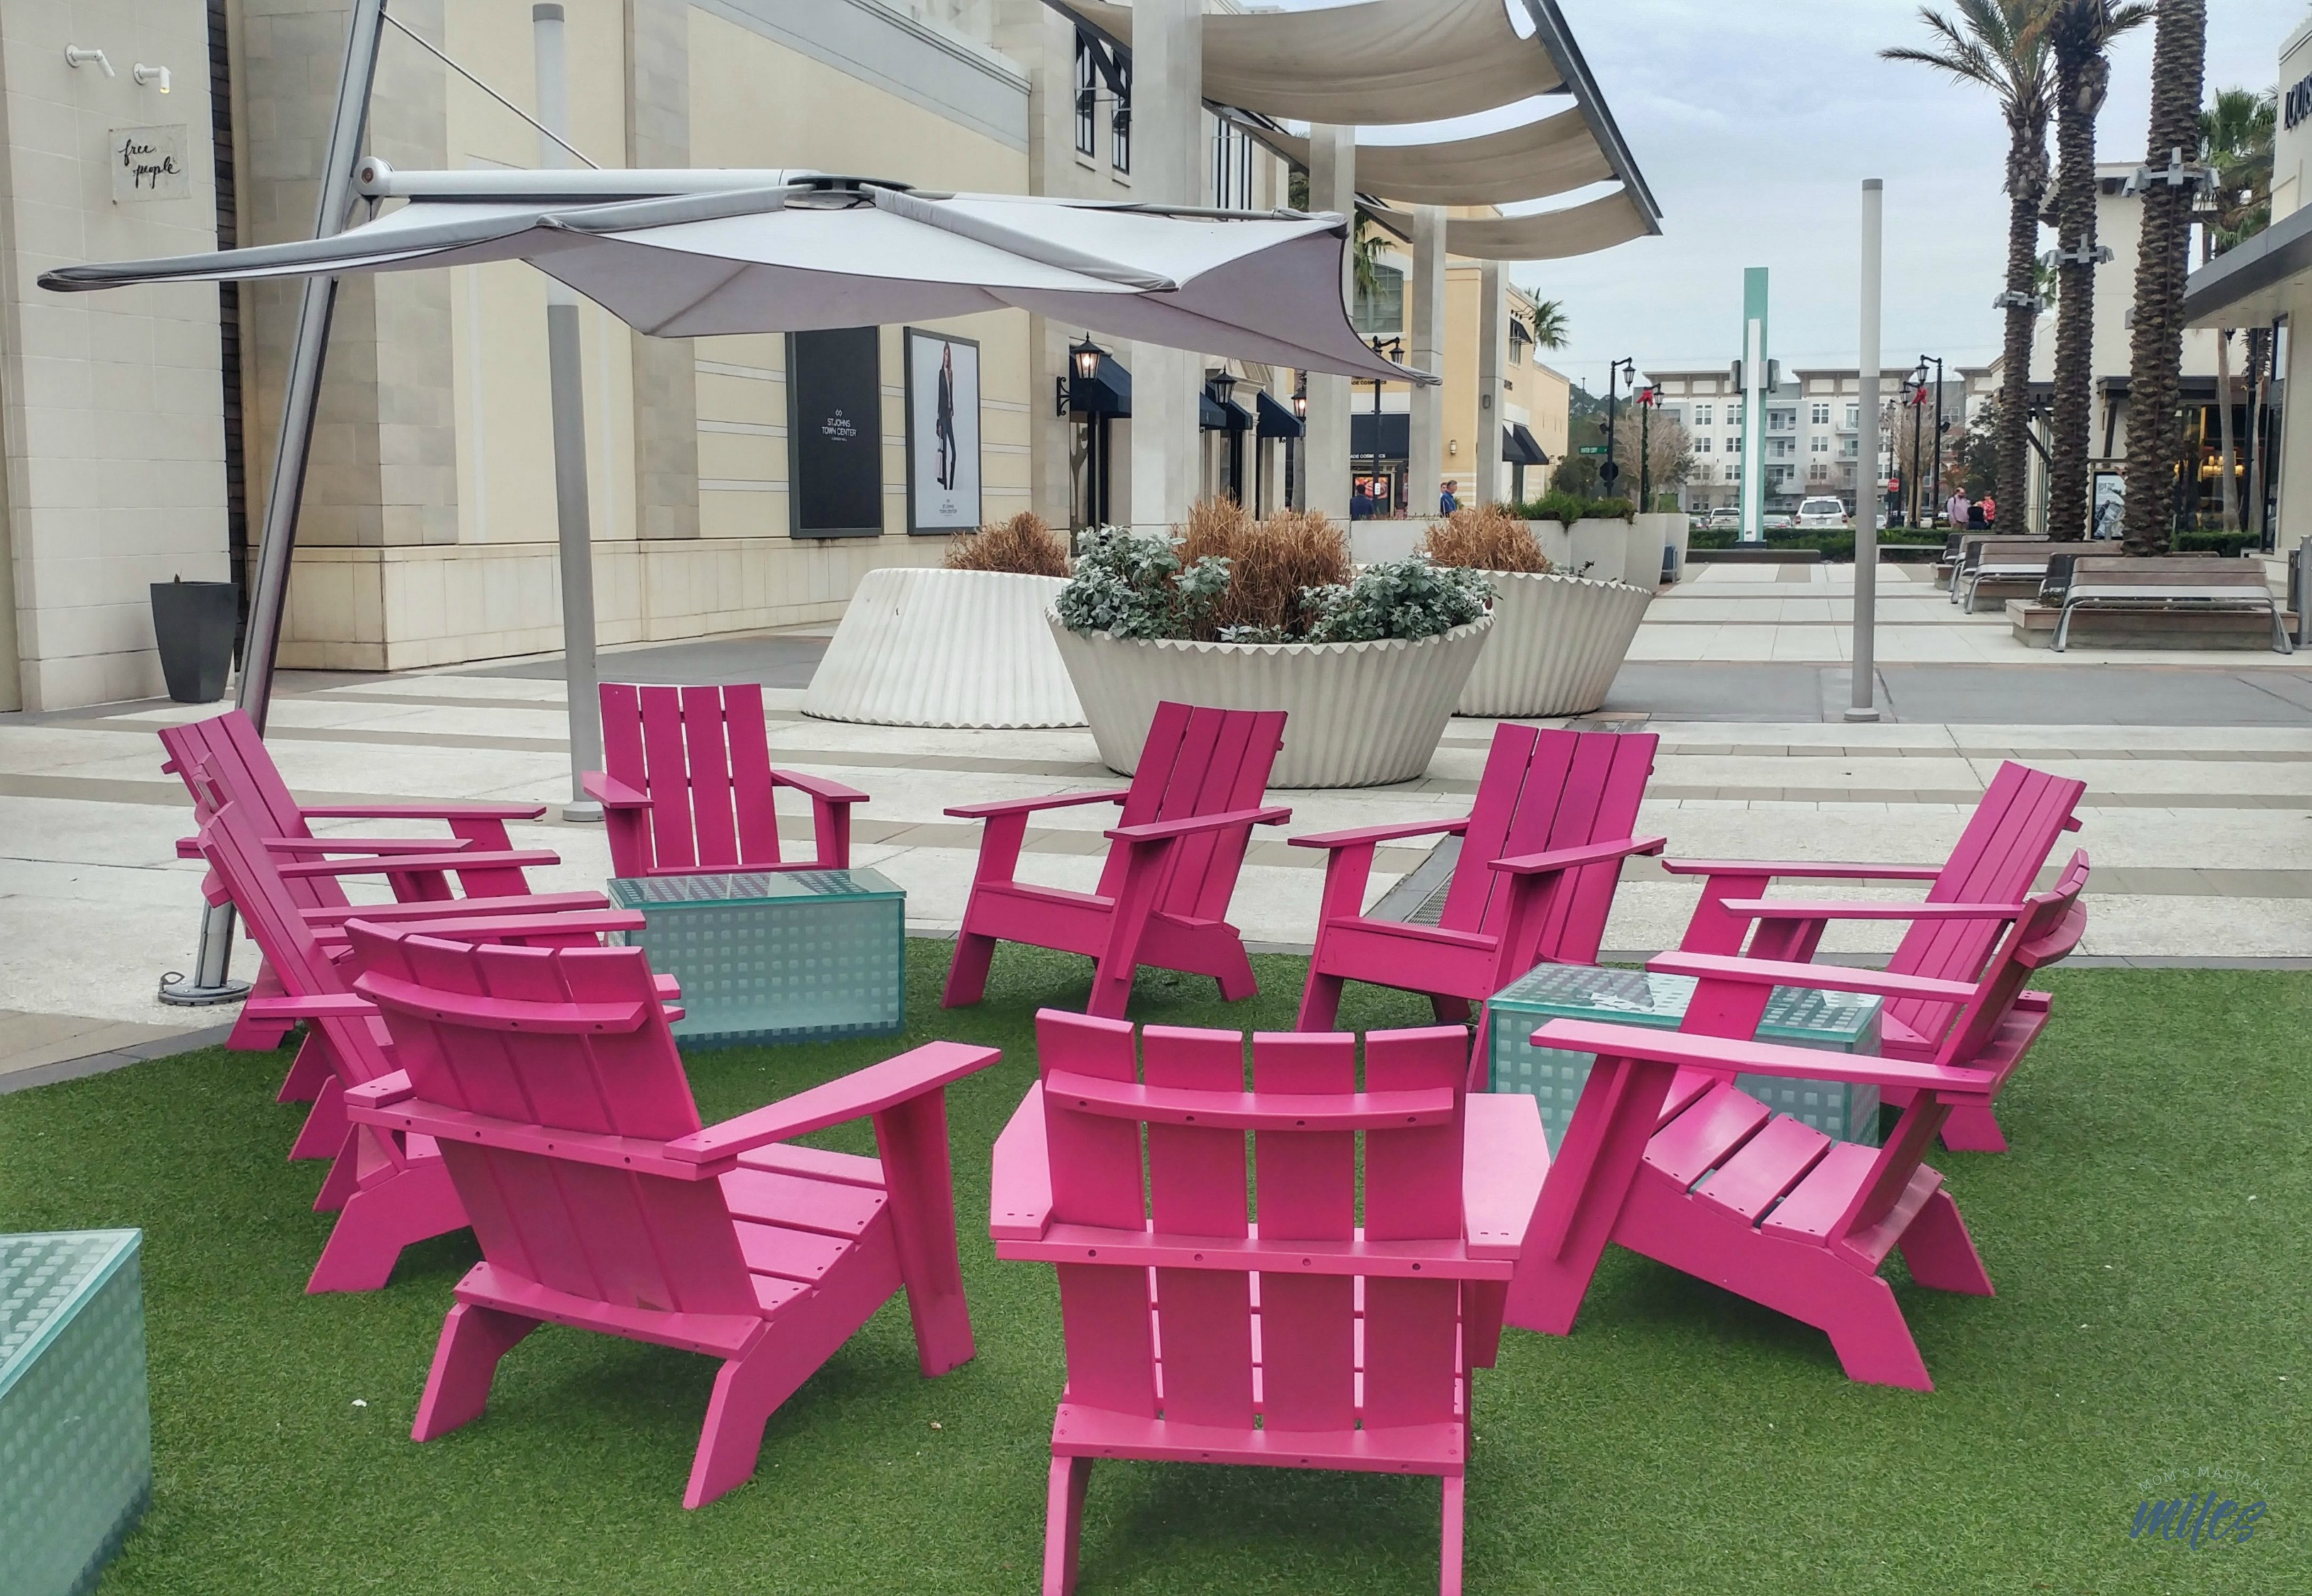 St. Johns Town Center in Jacksonville, FL is a shopping and dining area that invites you to hang out and stay a while!